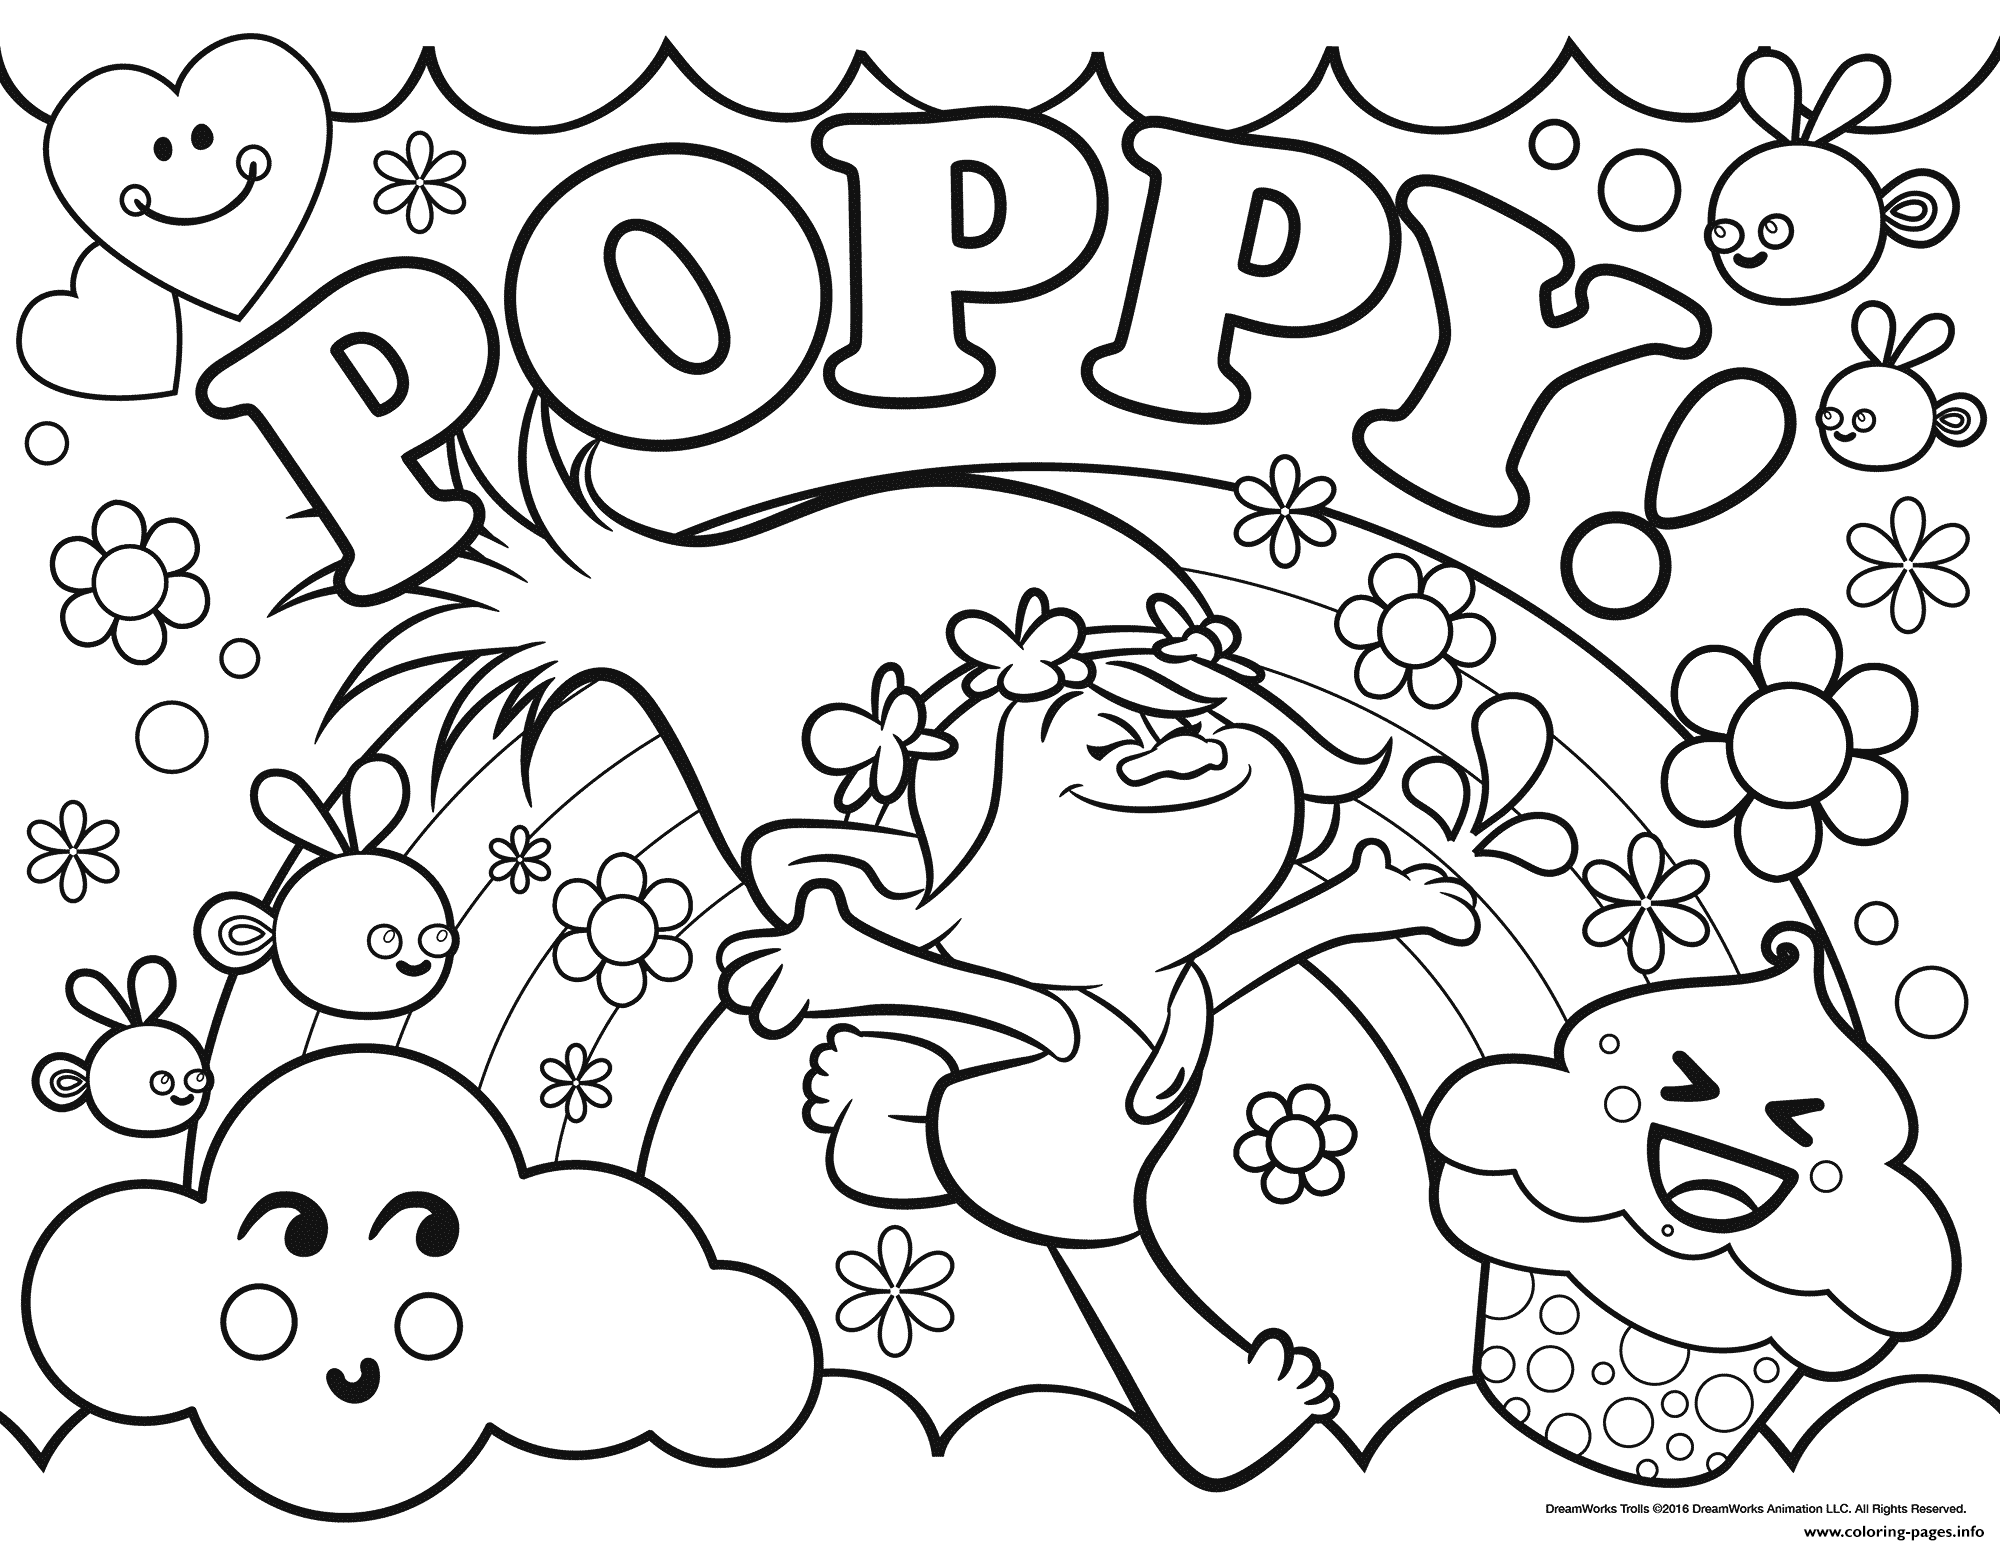 trolls coloring pages printable Trolls Poppy Coloring Pages Printable trolls coloring pages printable